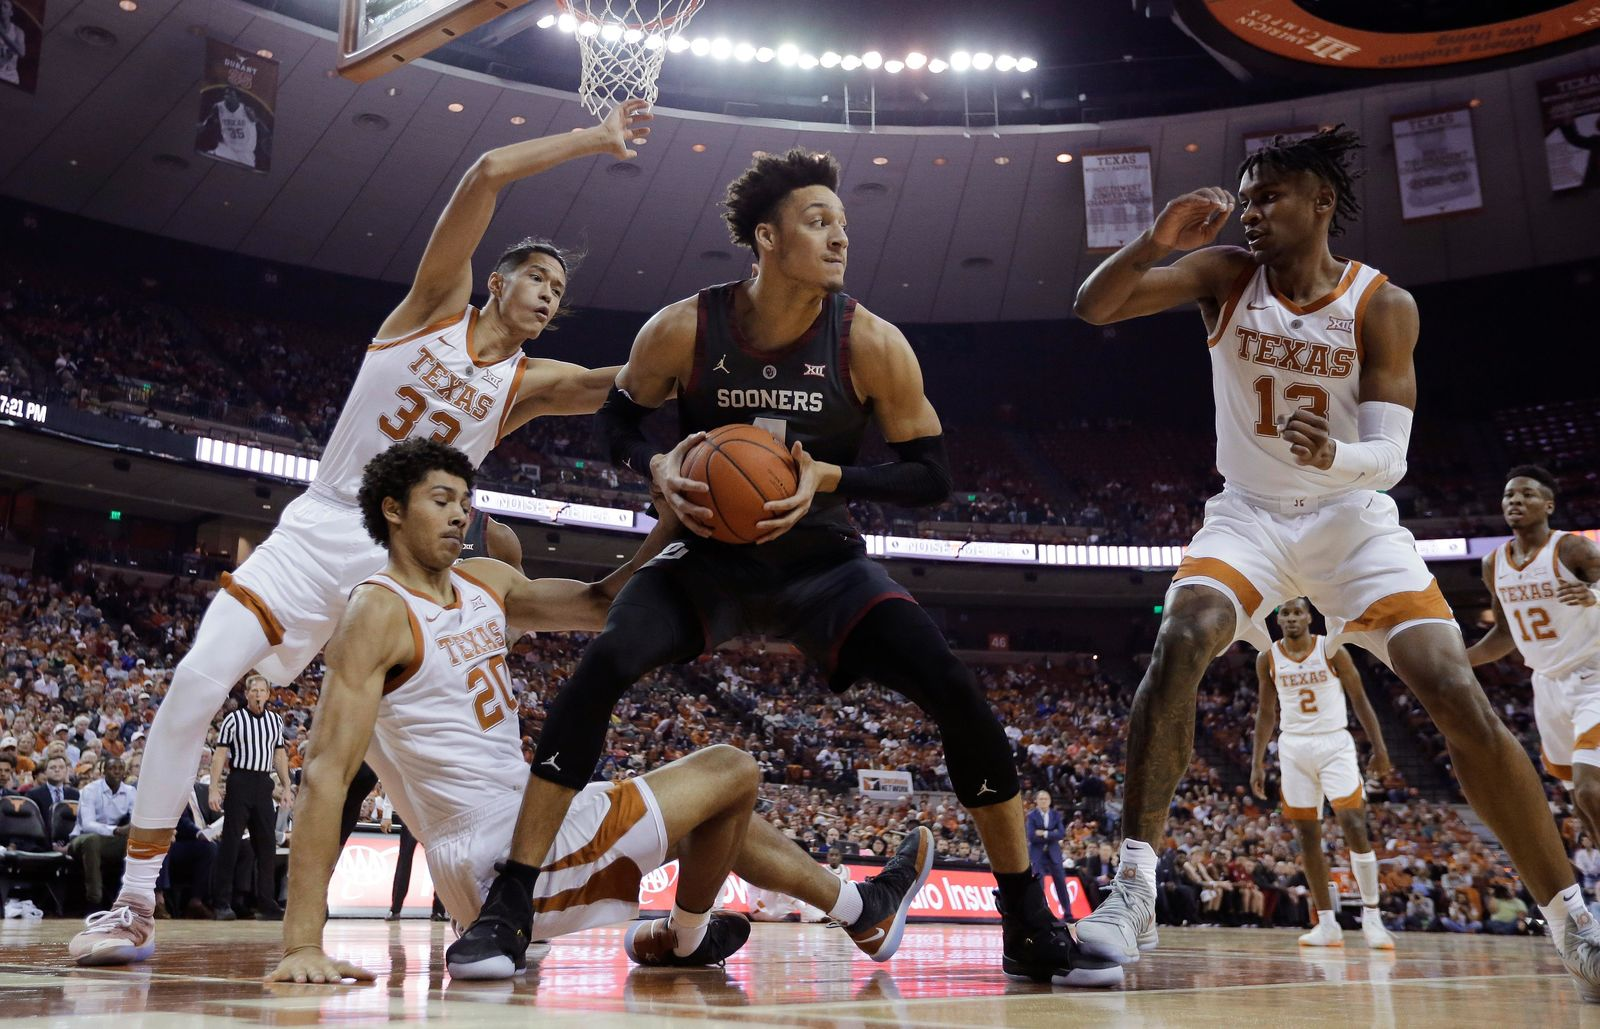 Oklahoma center Jamuni McNeace (4) grabs a rebound in front of Texas forward Kamaka Hepa (33), forward Jericho Sims (20) and guard Jase Febres (13) during the first half of an NCAA college basketball game, in Austin, Texas, Saturday, Jan. 19, 2019. (AP Photo/Eric Gay)